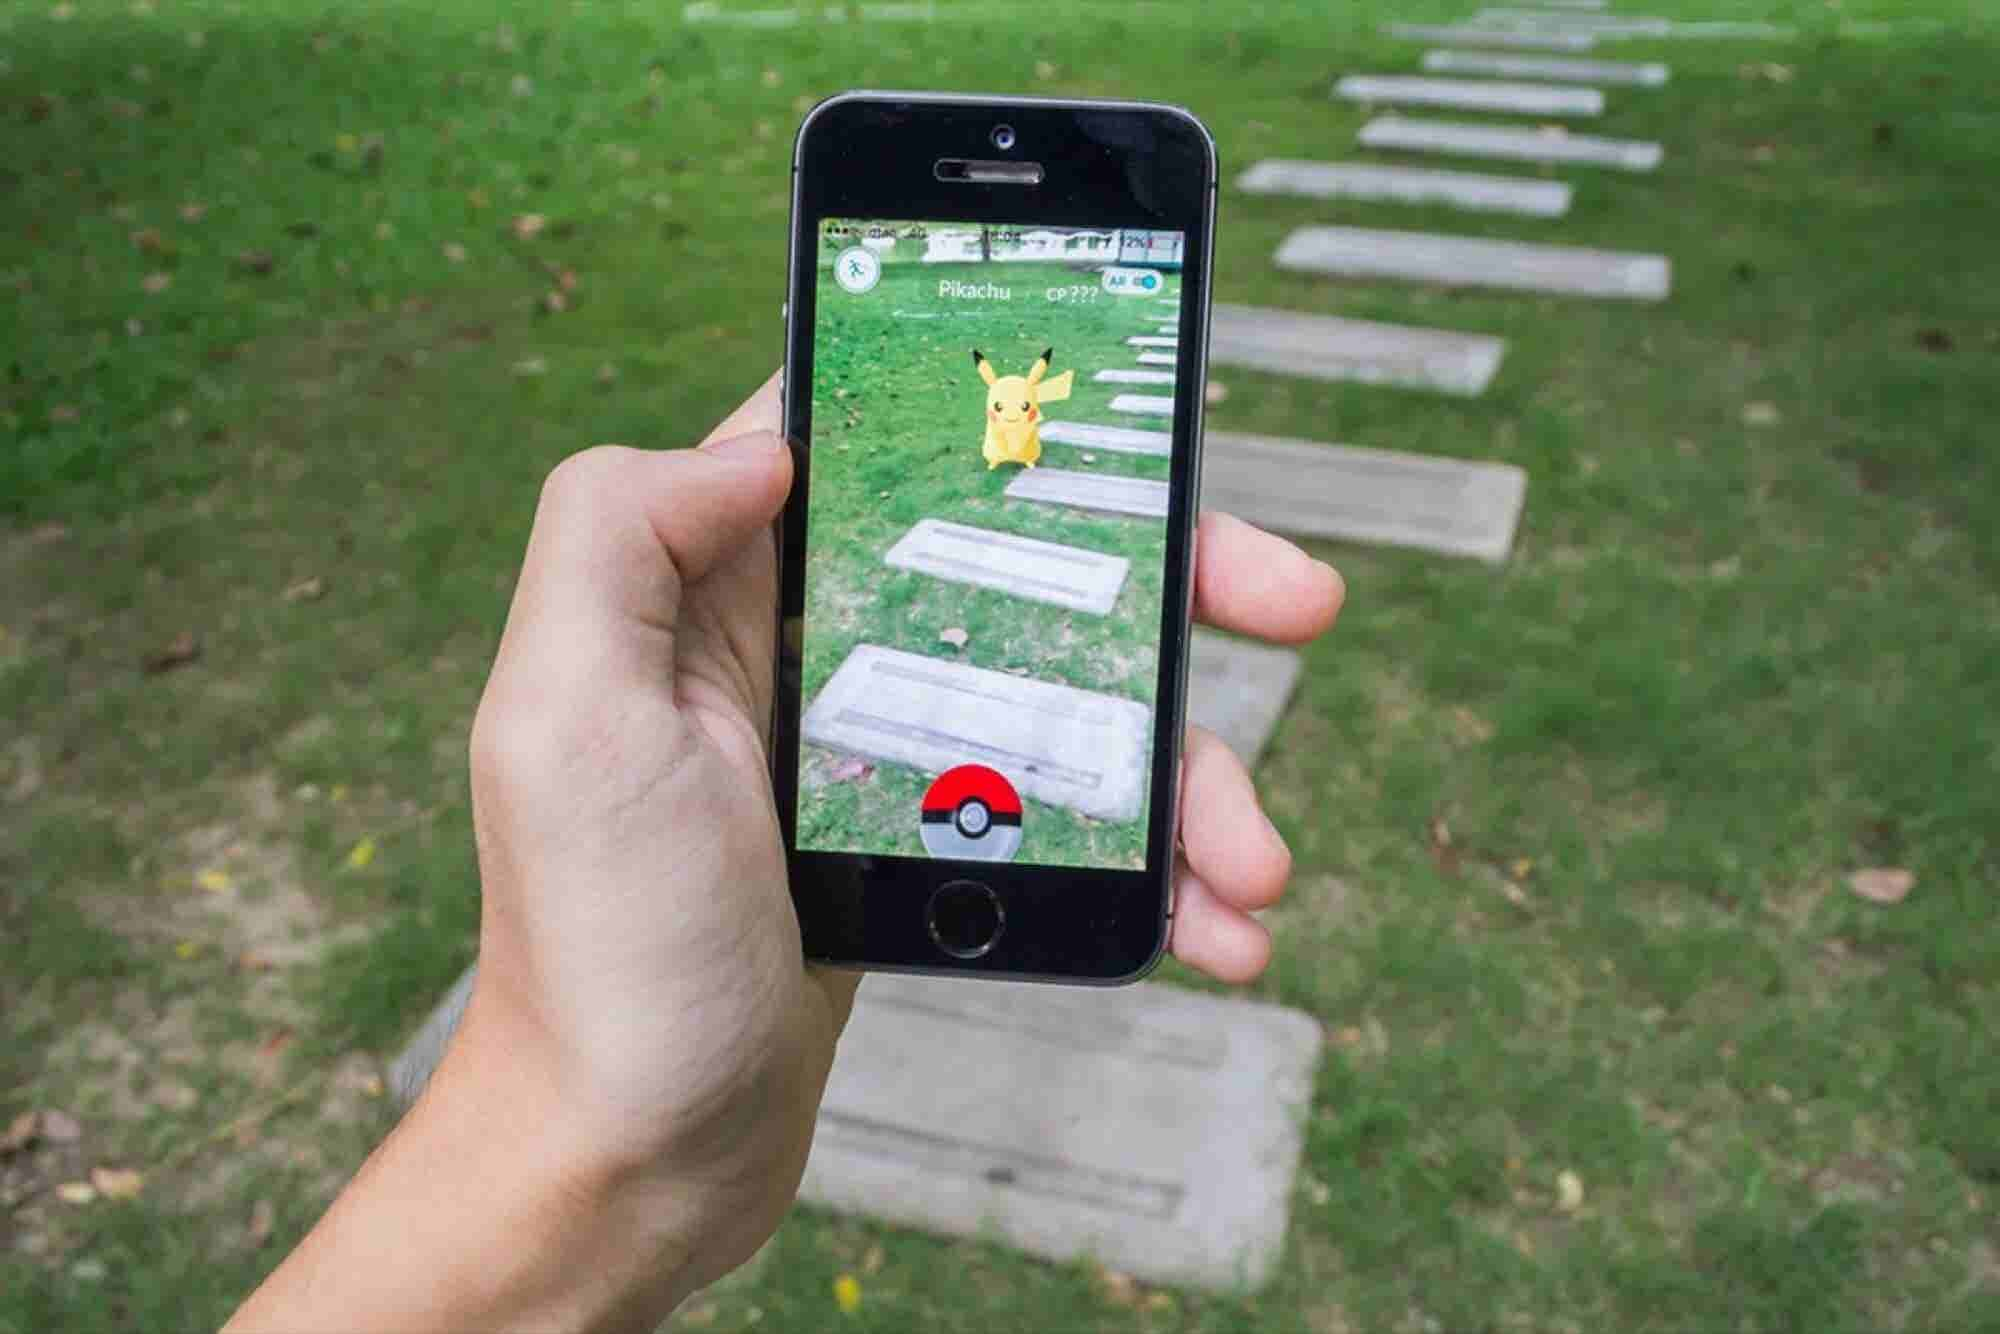 How Pokémon Go Will Change Mobile Advertising